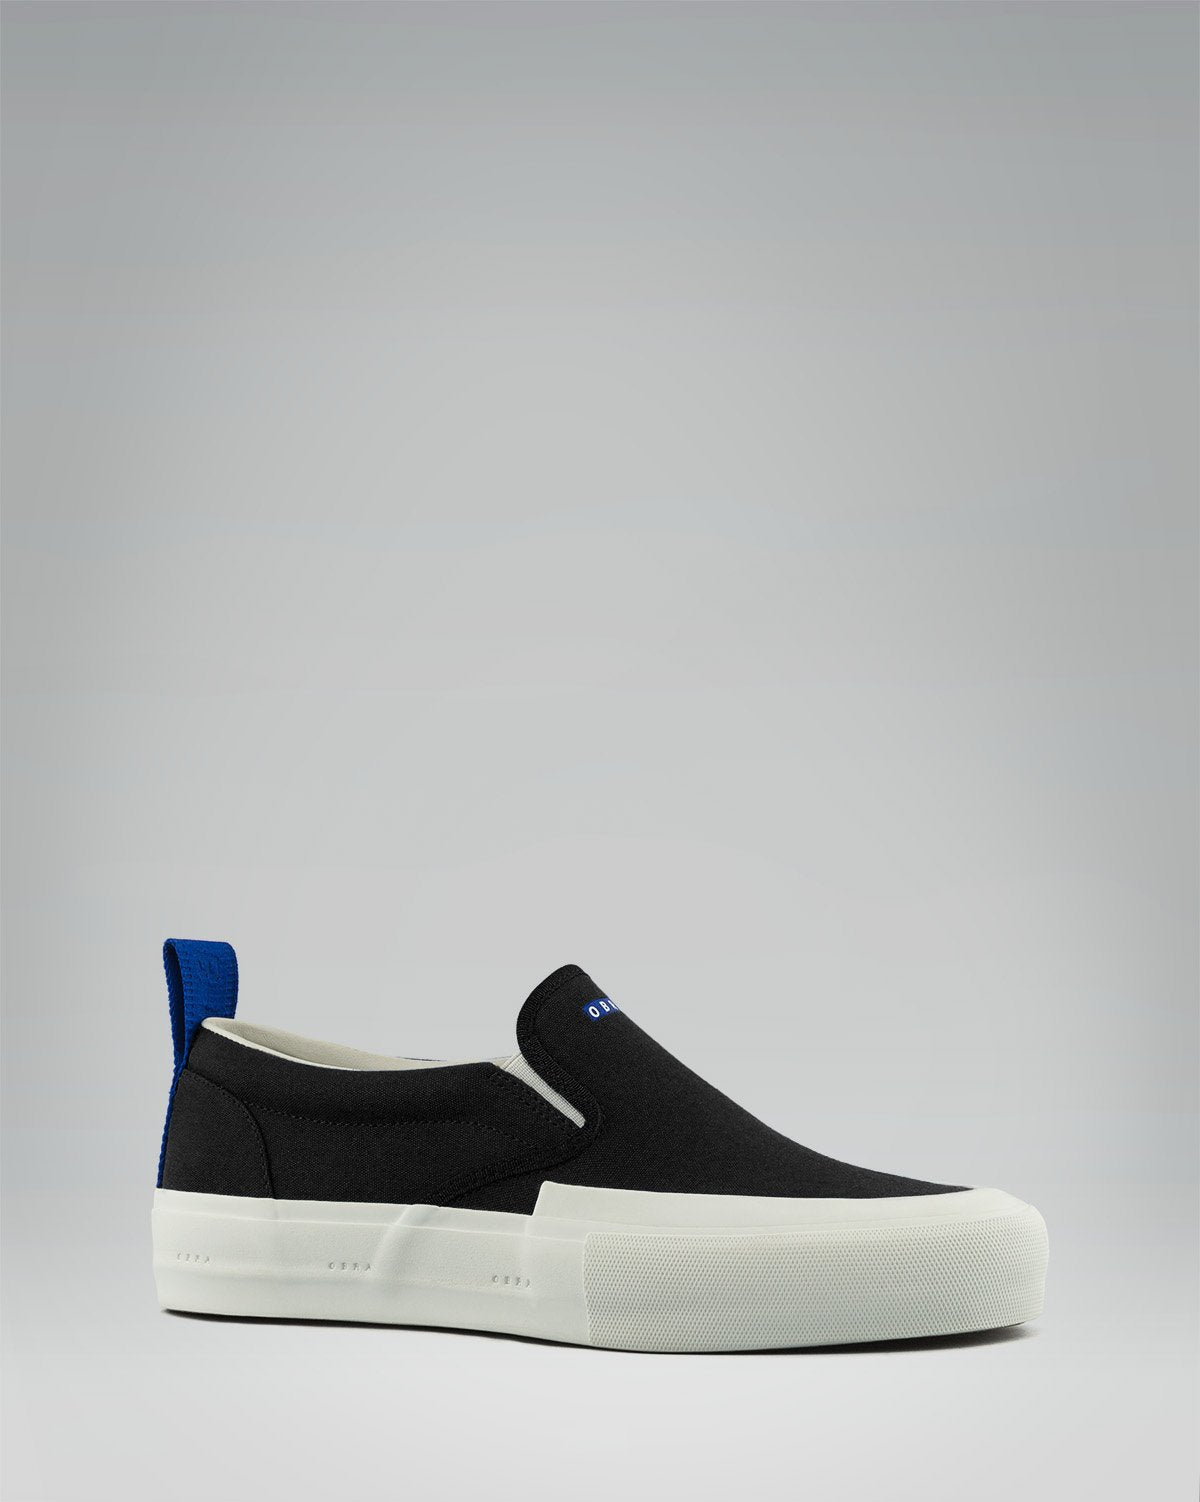 240 CANVAS SLIP-ON WRAP TOE<br />Black/White/OBRA Blue